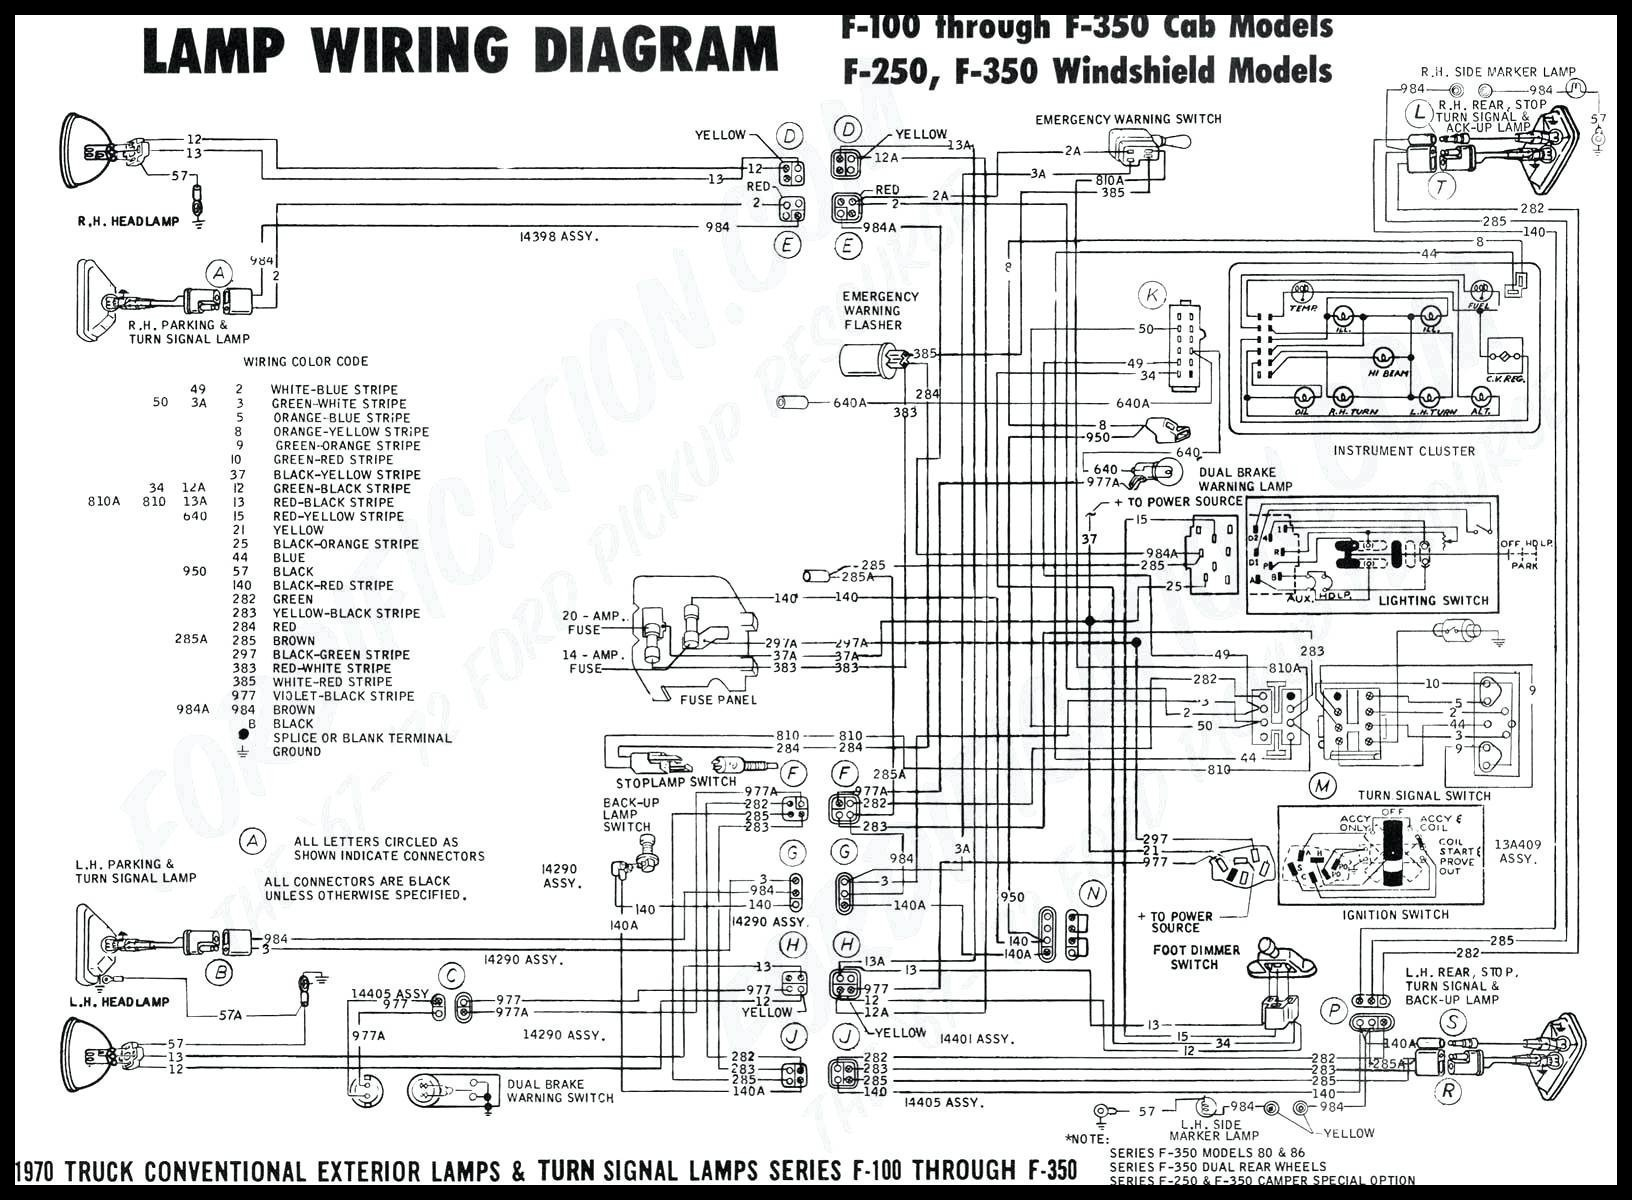 Toyota Corolla Electrical Wiring Diagram Fresh Toyota Corolla Wiring Diagram Queen Int